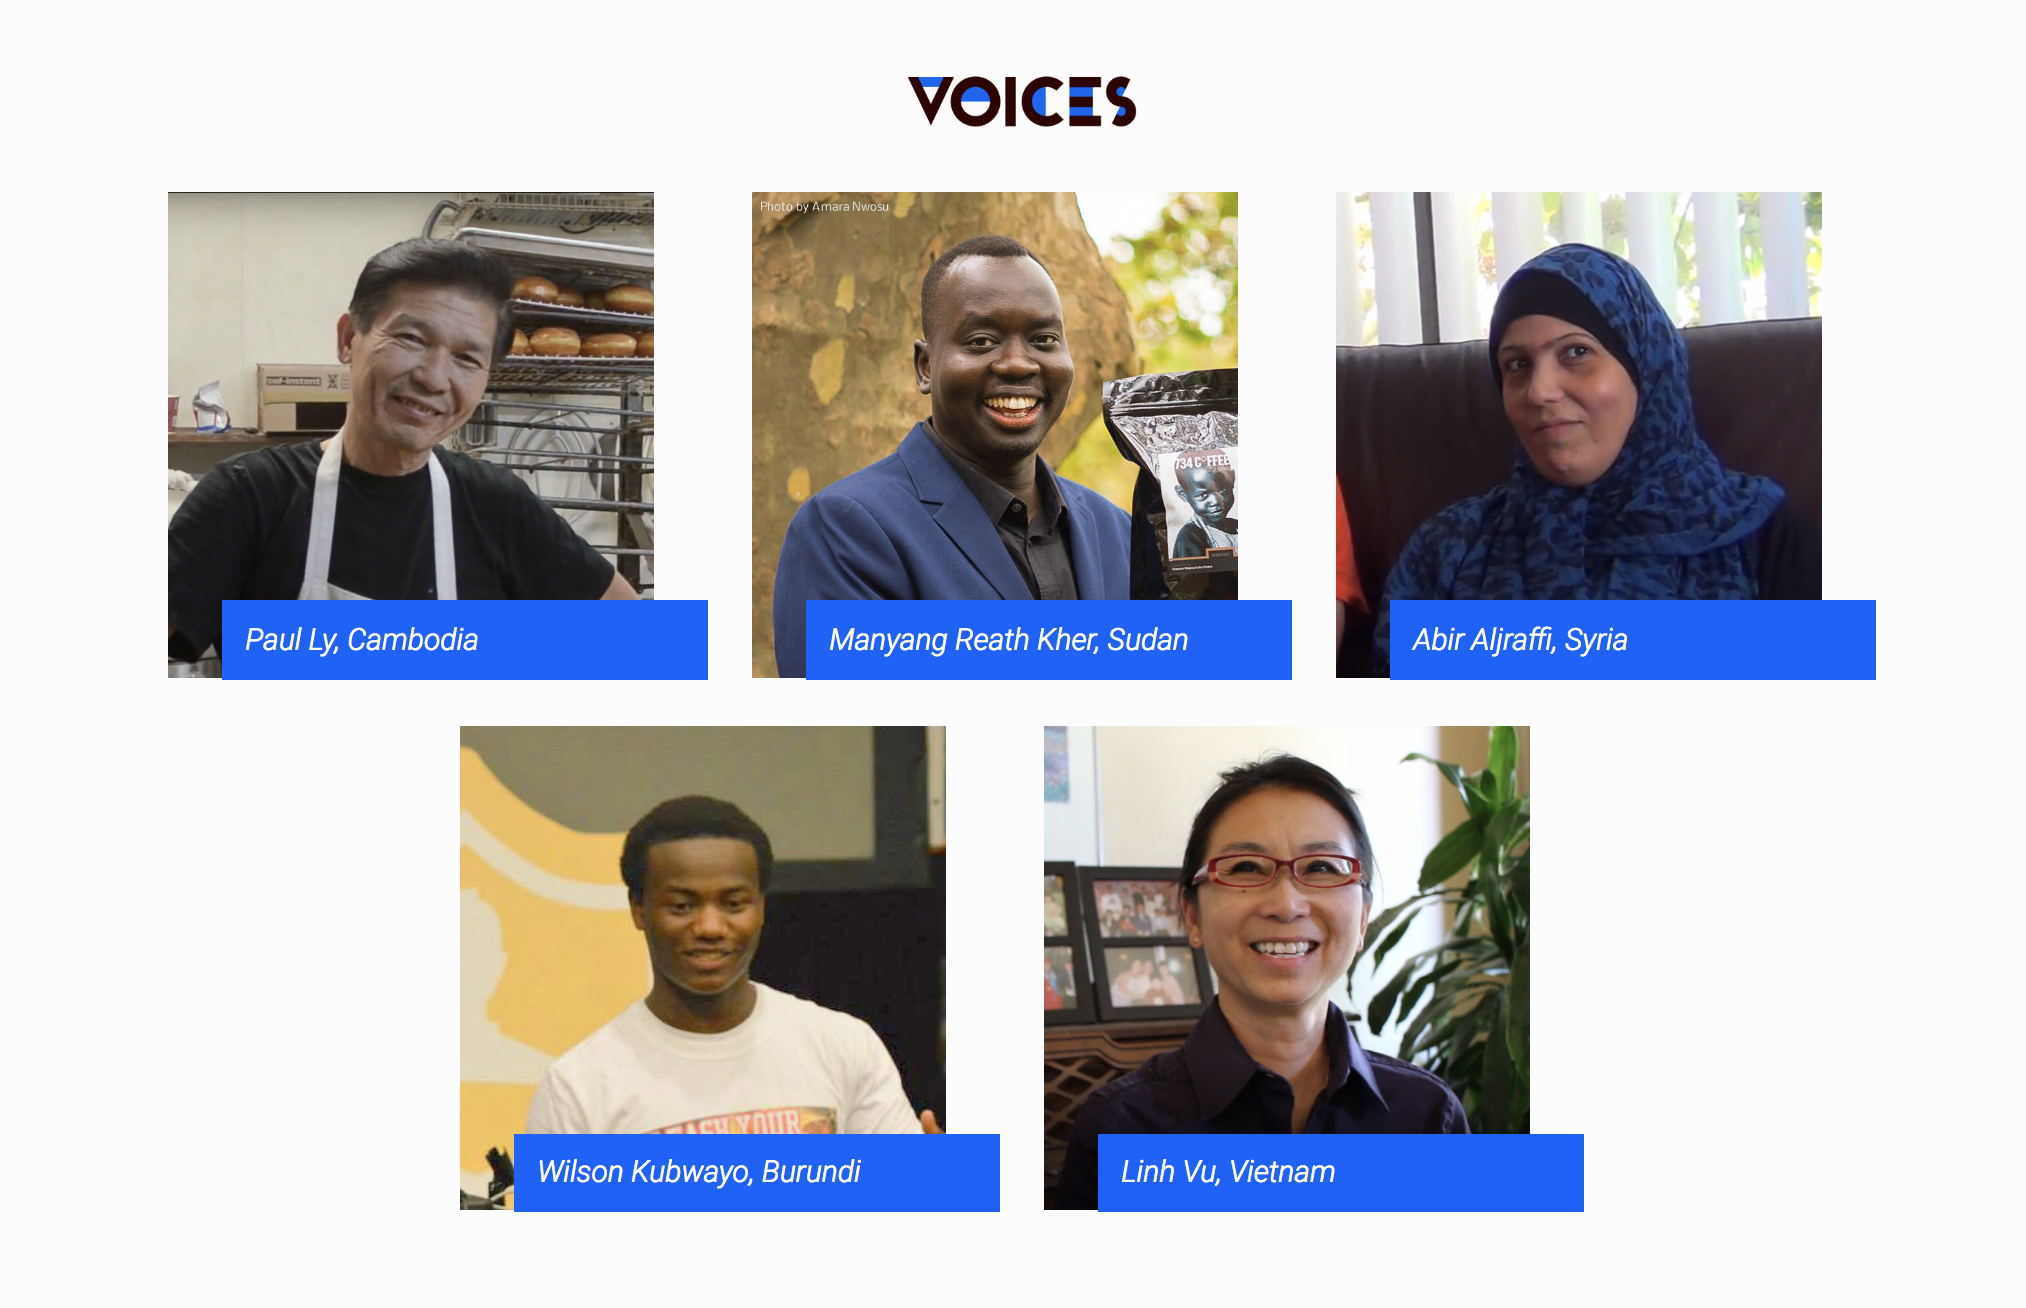 VOICES Homepage